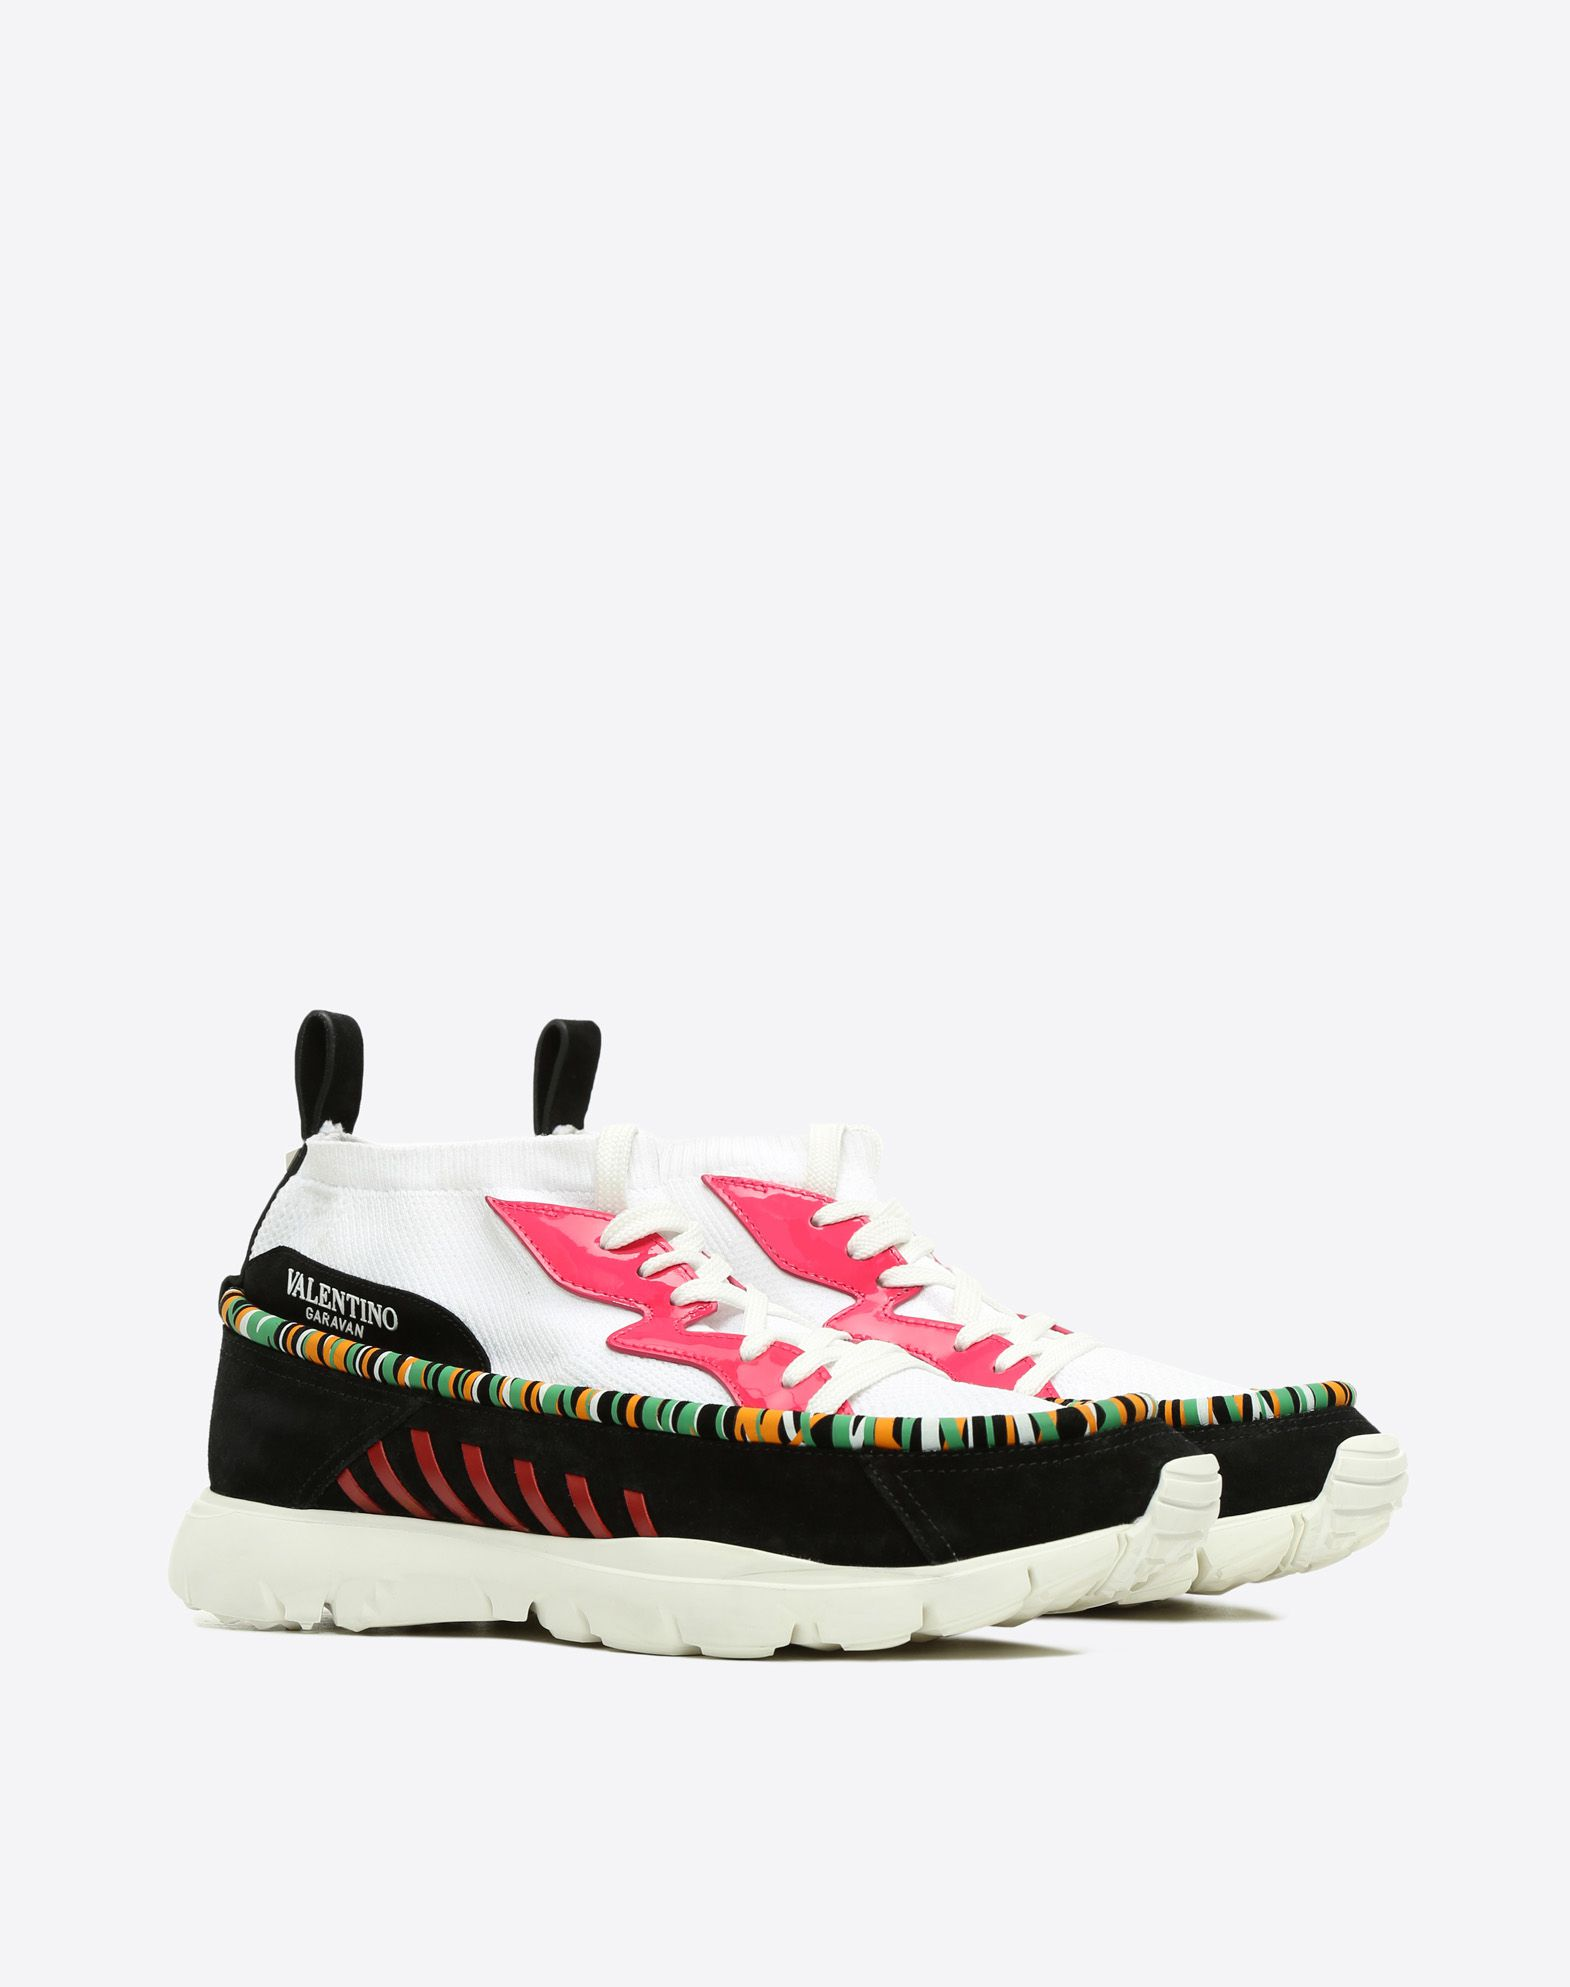 Valentino Garavani Heroes Tribe sneakers - Black Valentino Buy Cheap Best Wholesale Free Shipping Best Store To Get Best Cheap Online Outlet Authentic Cheap Sale Supply rf1deoUkD